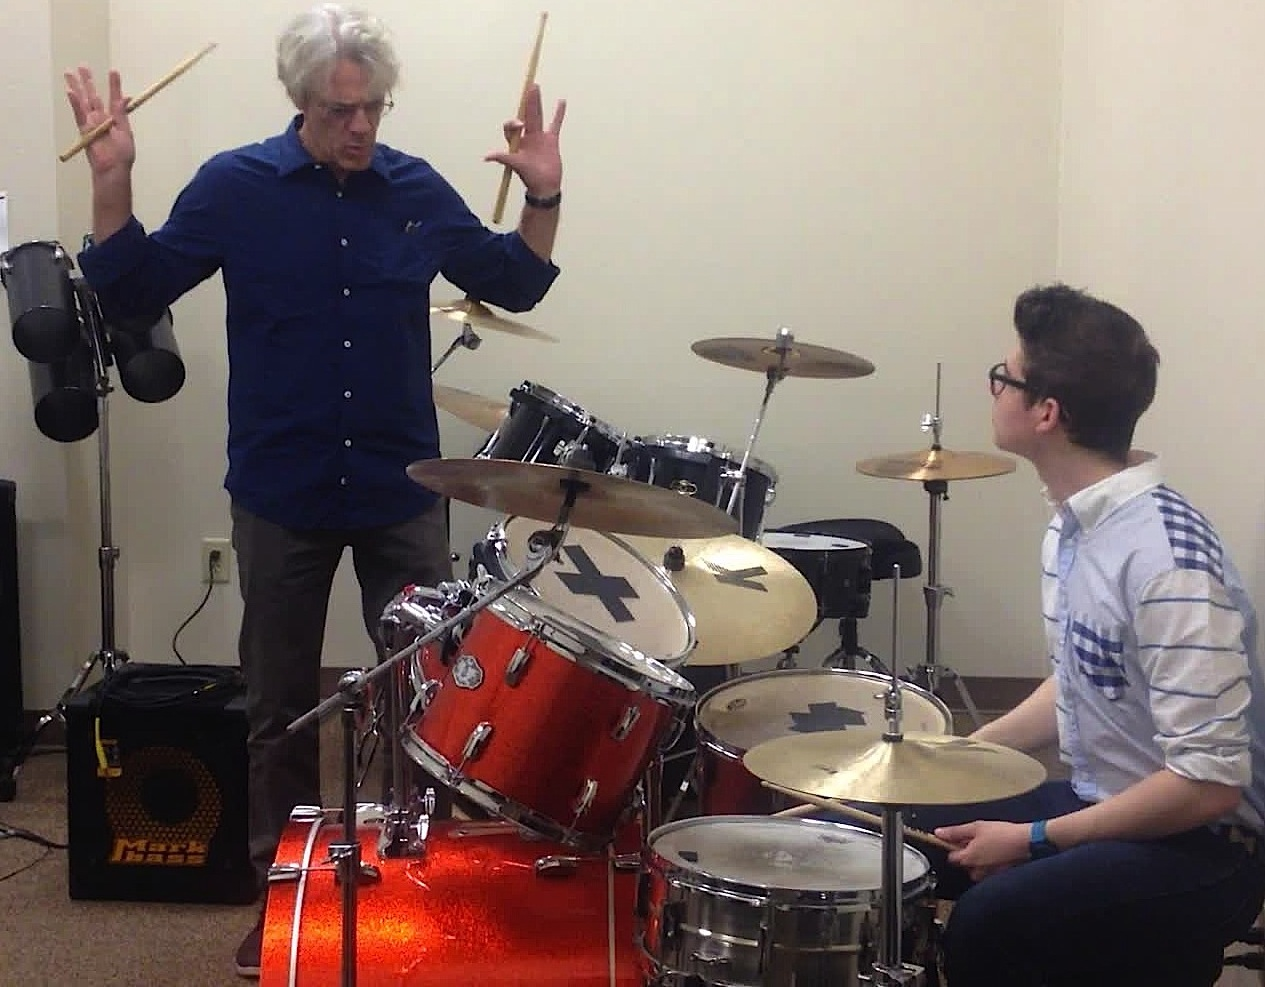 Tim Kane<br /> The Lesson of a Lifetime: Inside a Live Tutorial with Famed Drummer/Composer Stewart Copeland (VIDEO)